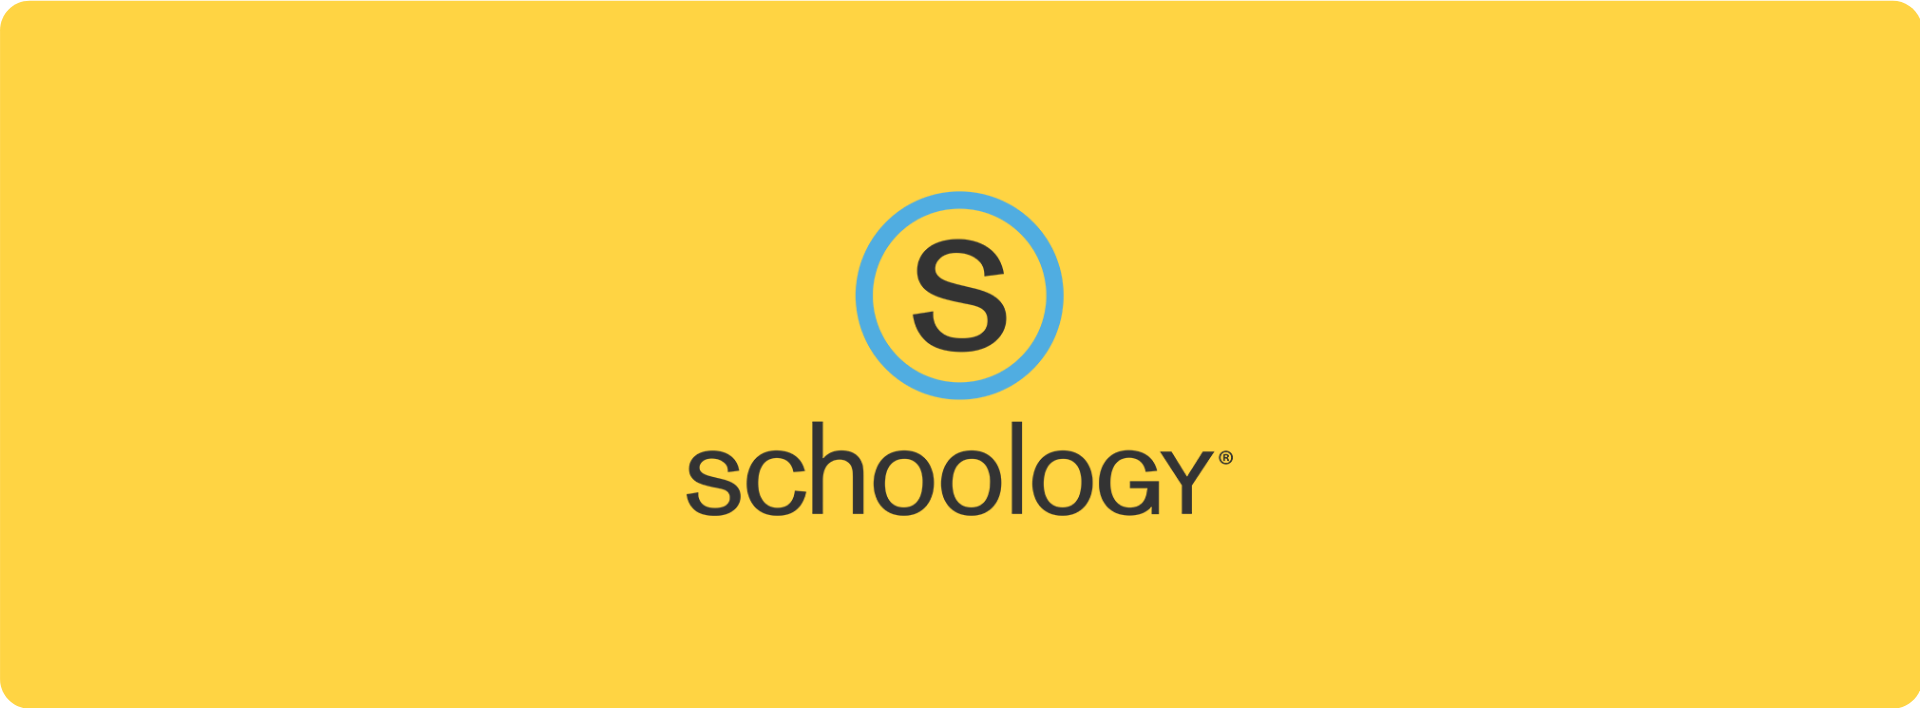 Schoology Image, Education Perfect